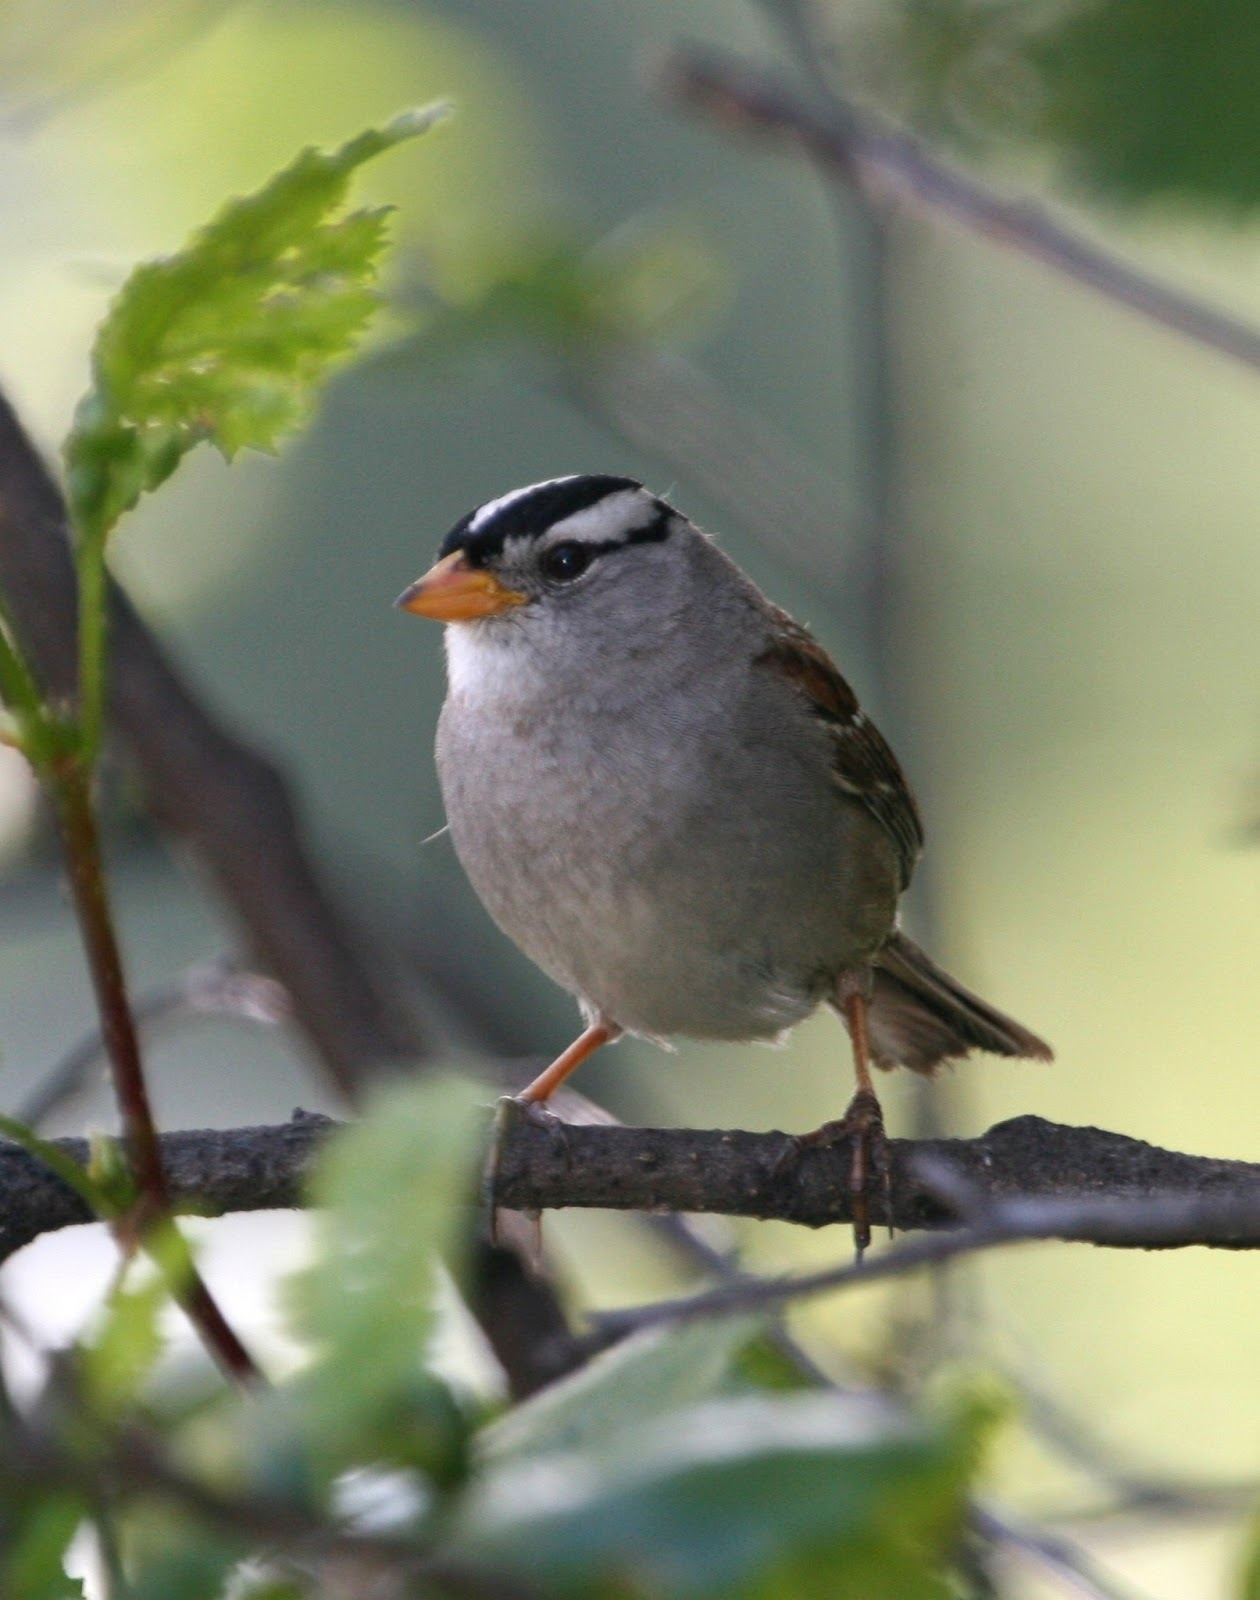 Wild Birds Unlimited: There are a lot of different ...